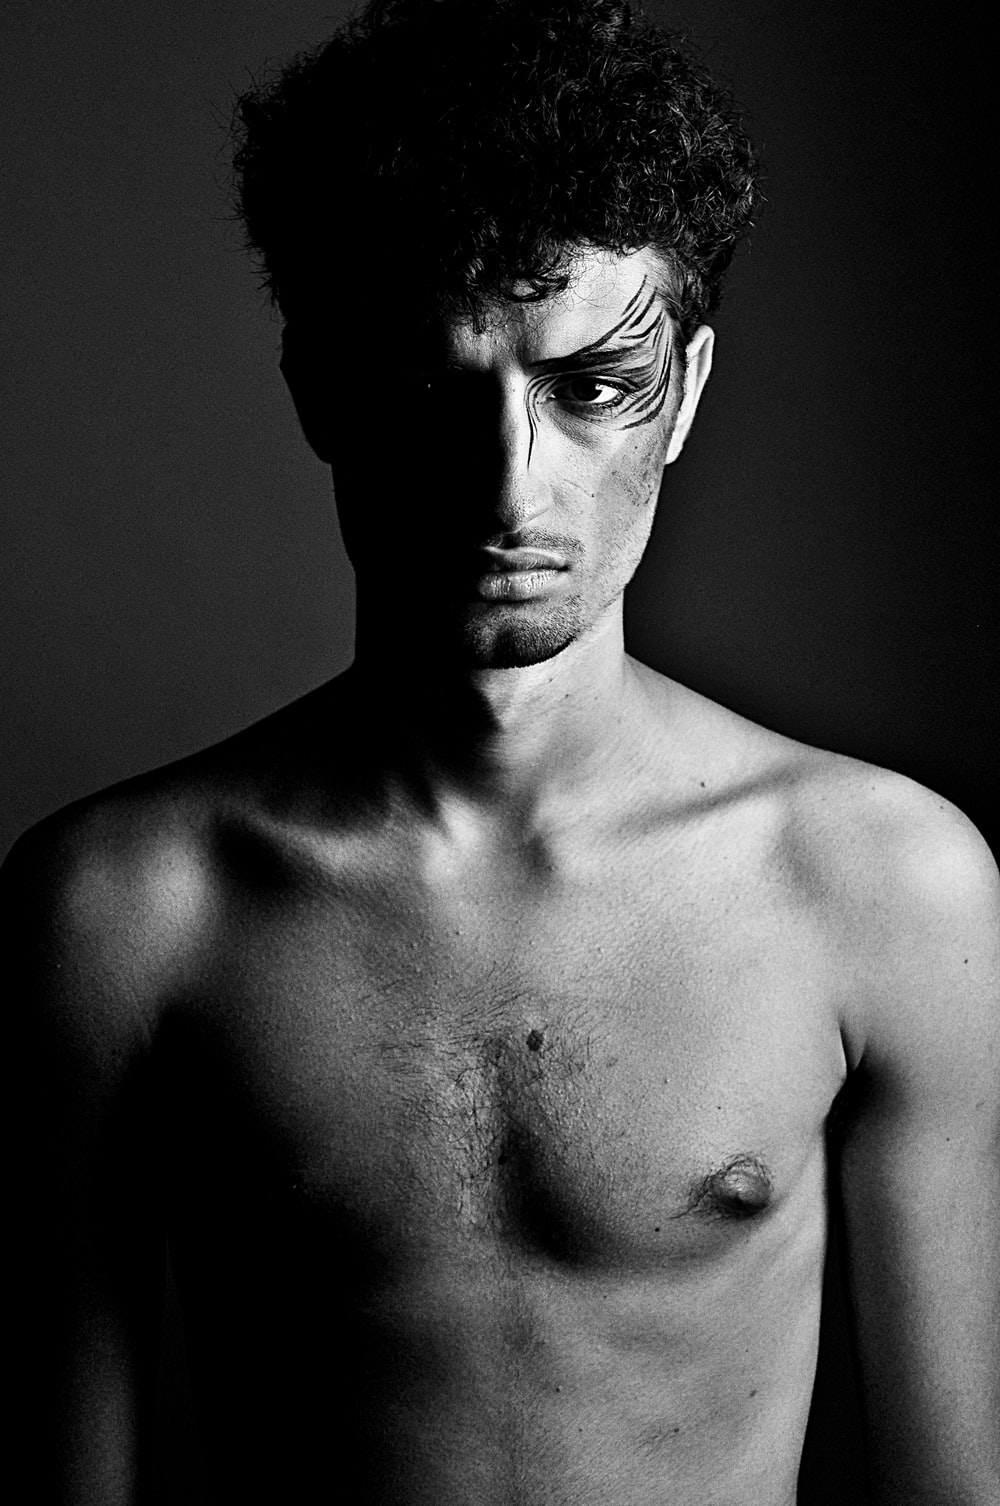 grayscale photography of topless man